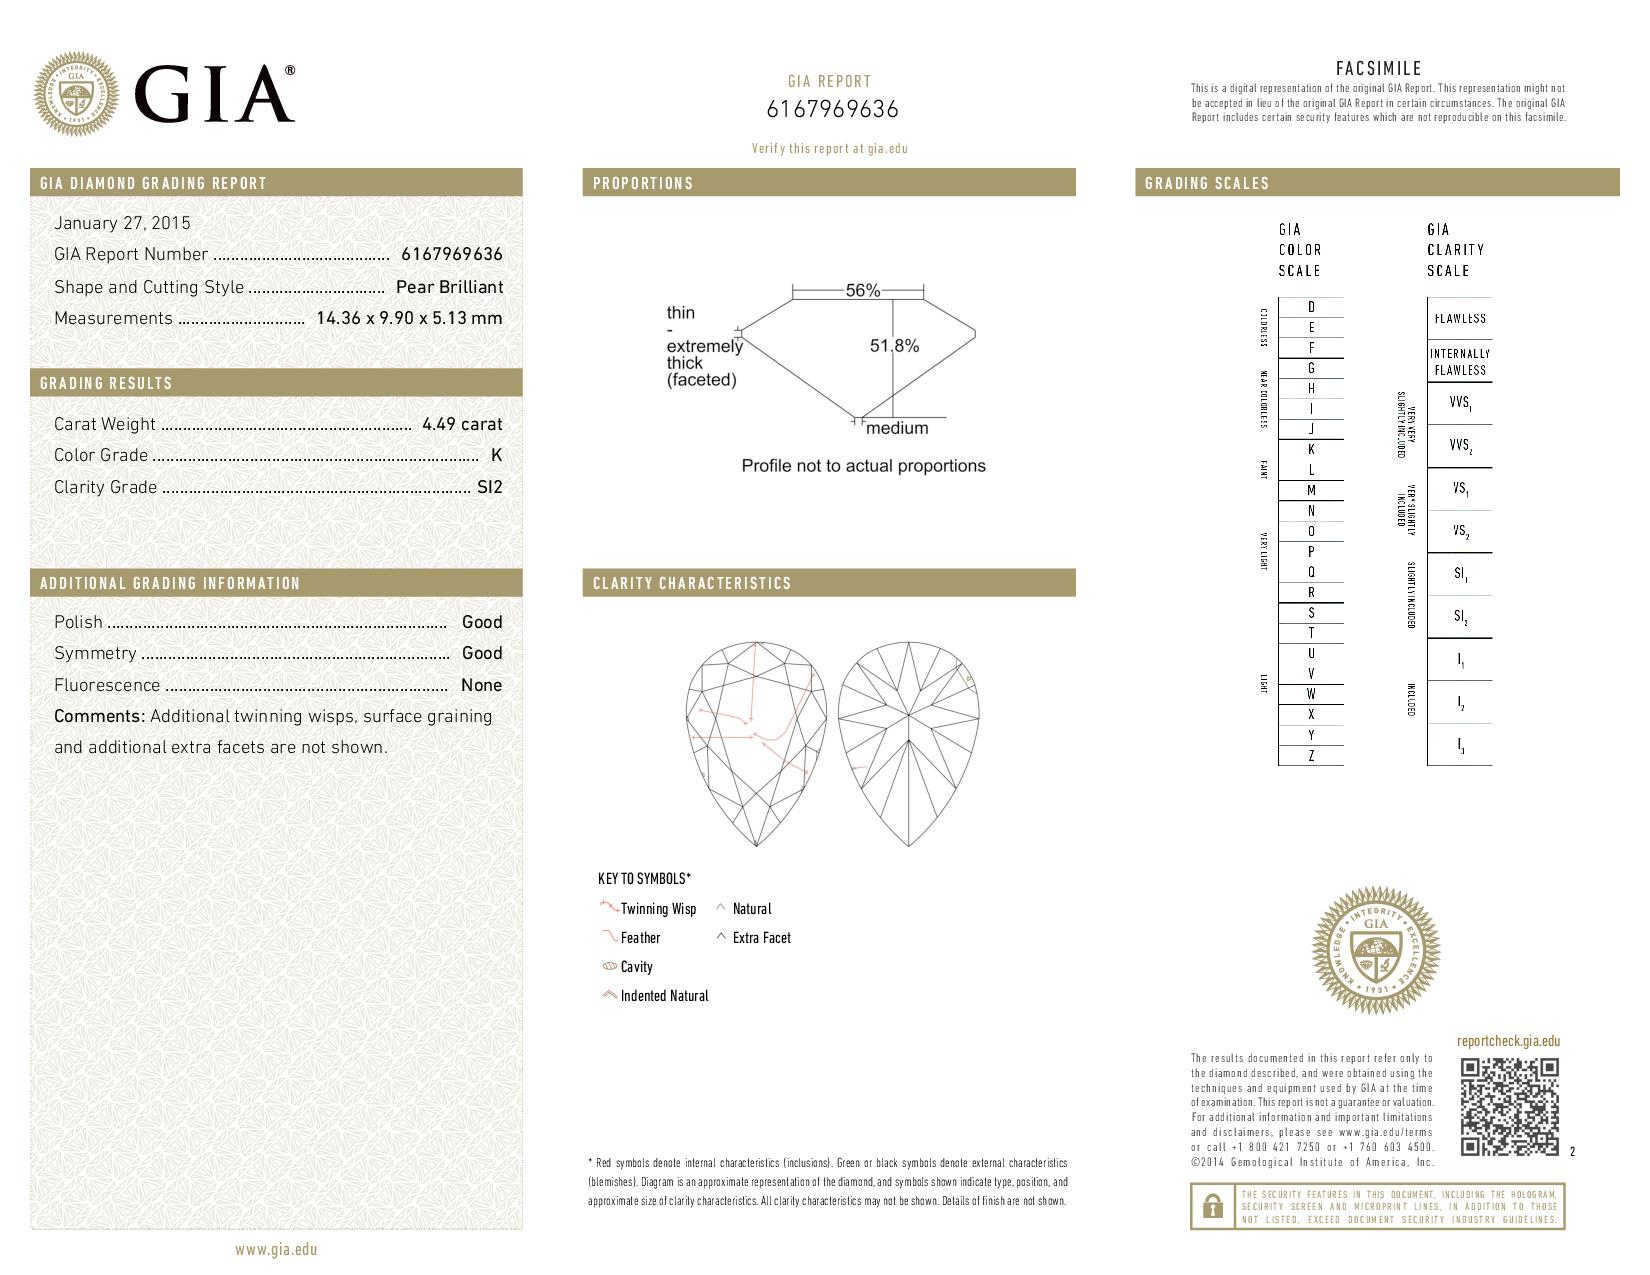 This is a 4.49 carat pear shape, K color, SI2 clarity natural diamond accompanied by a GIA grading report.